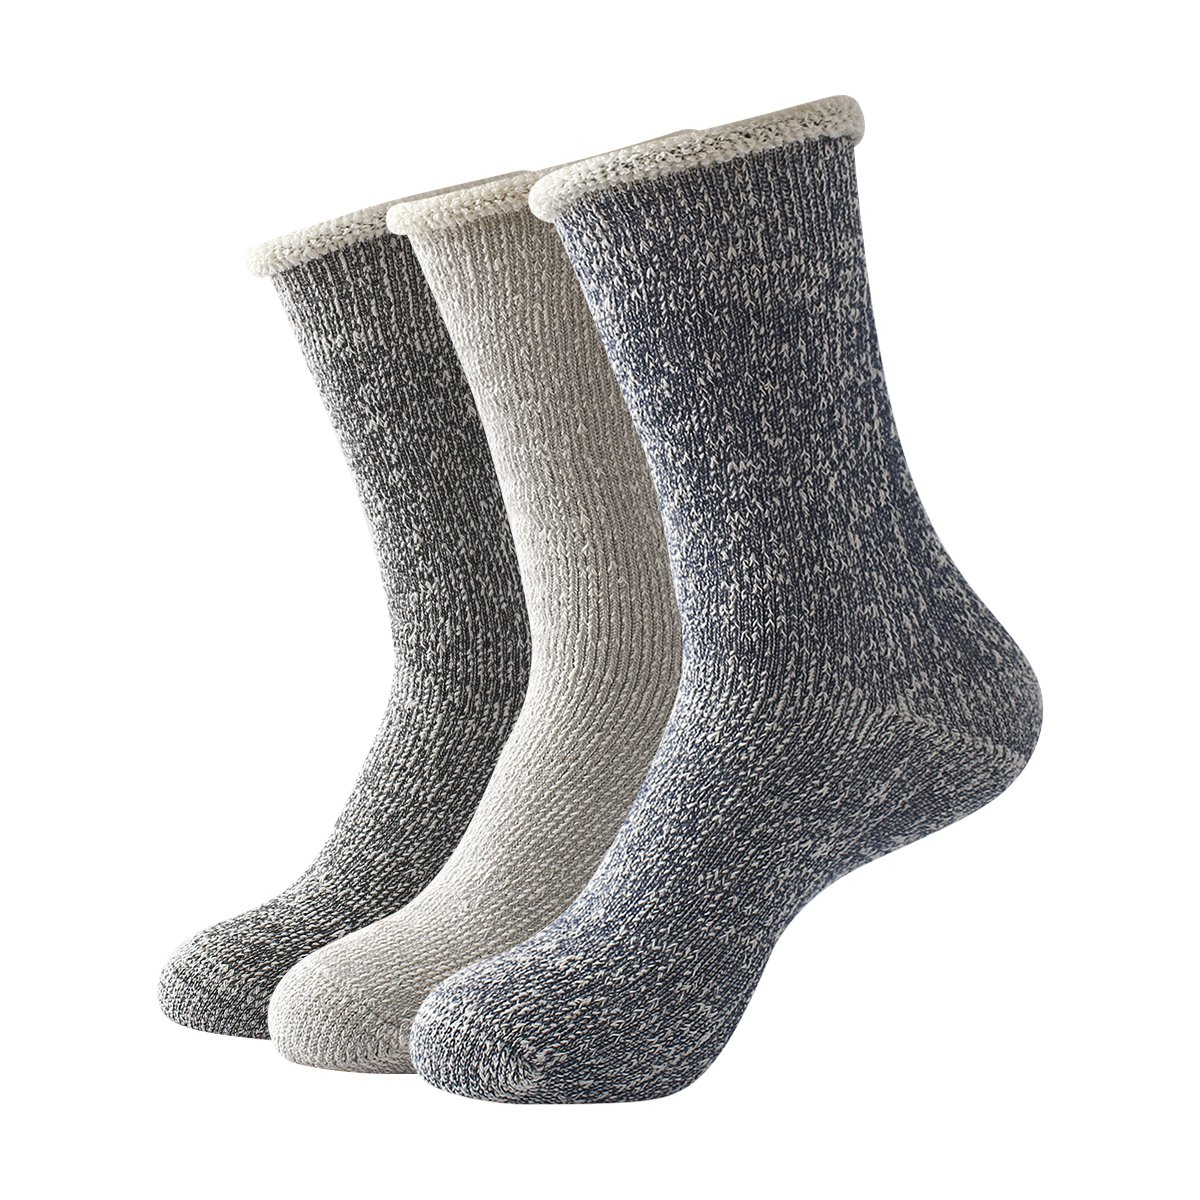 Beauttable 3 Pack Men Extra Thick Terry Cotton Dress Socks Thermal Crew Winter Warm Comfort Classic Boot Socks